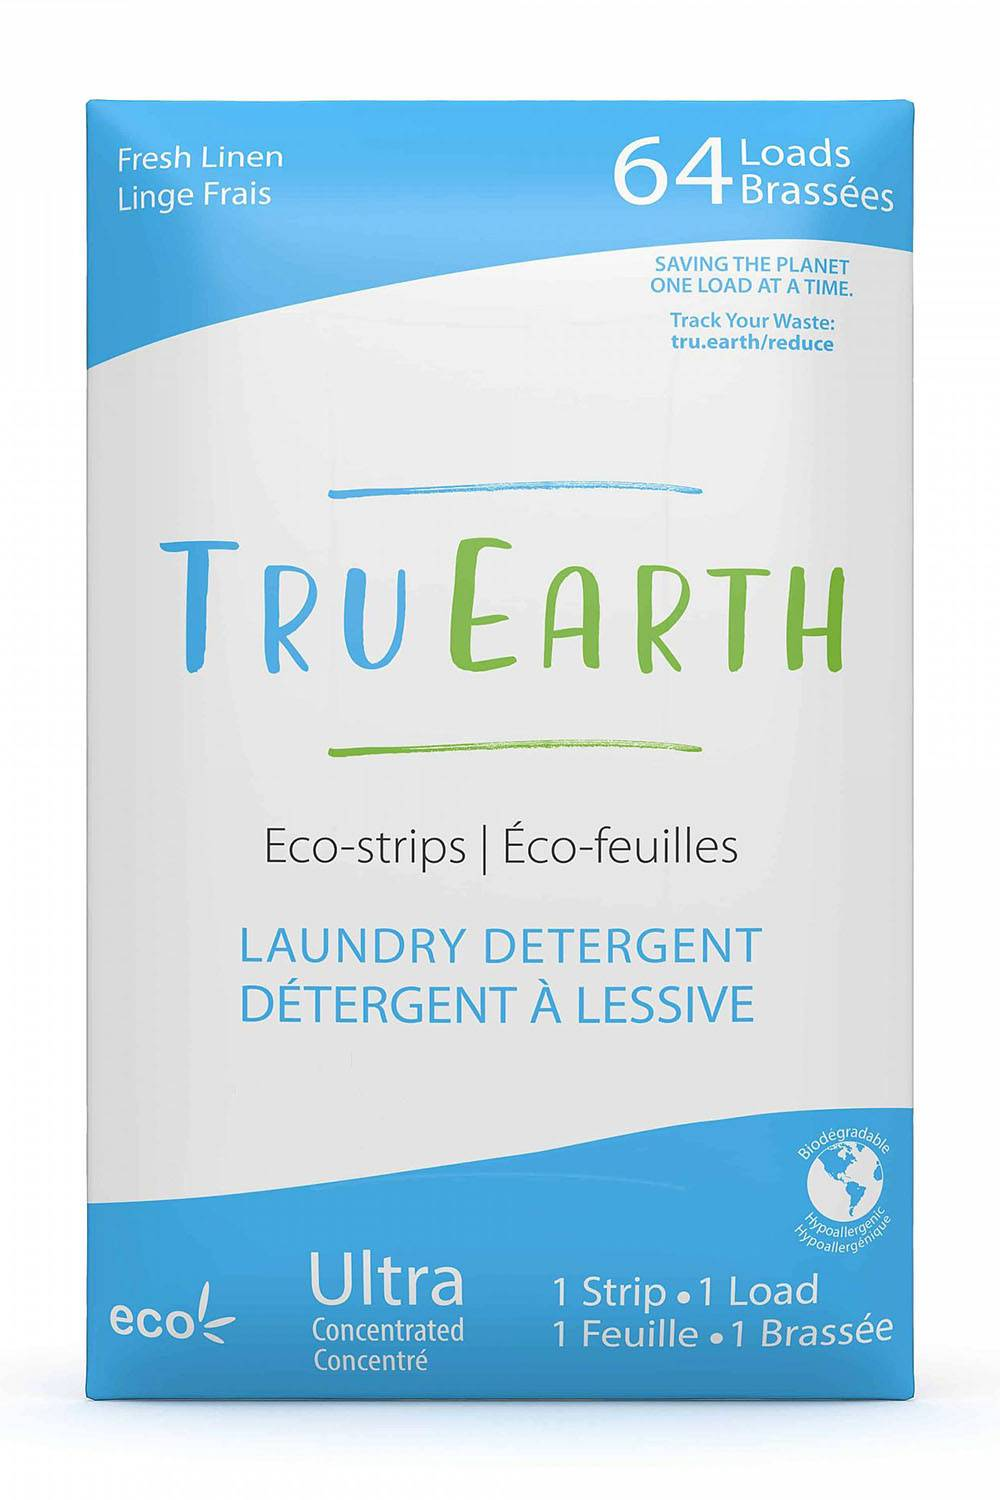 tru earth eco-friendly laundry detergent